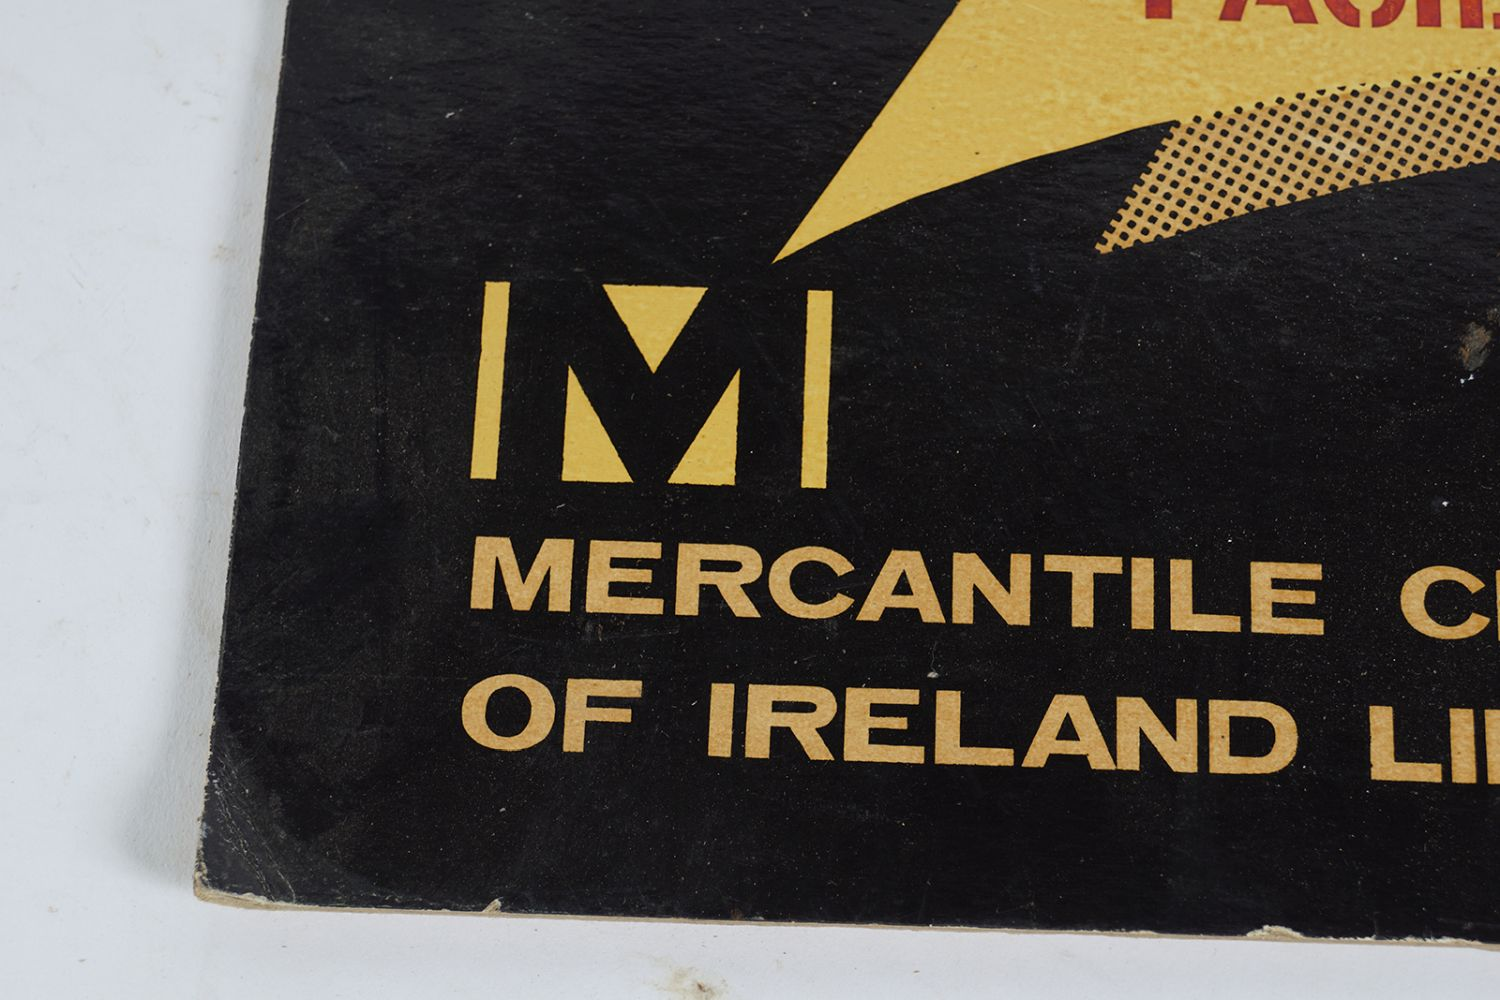 MERCANTILE CREDIT COMPANY OF IRELAND LIMITED - Image 3 of 6